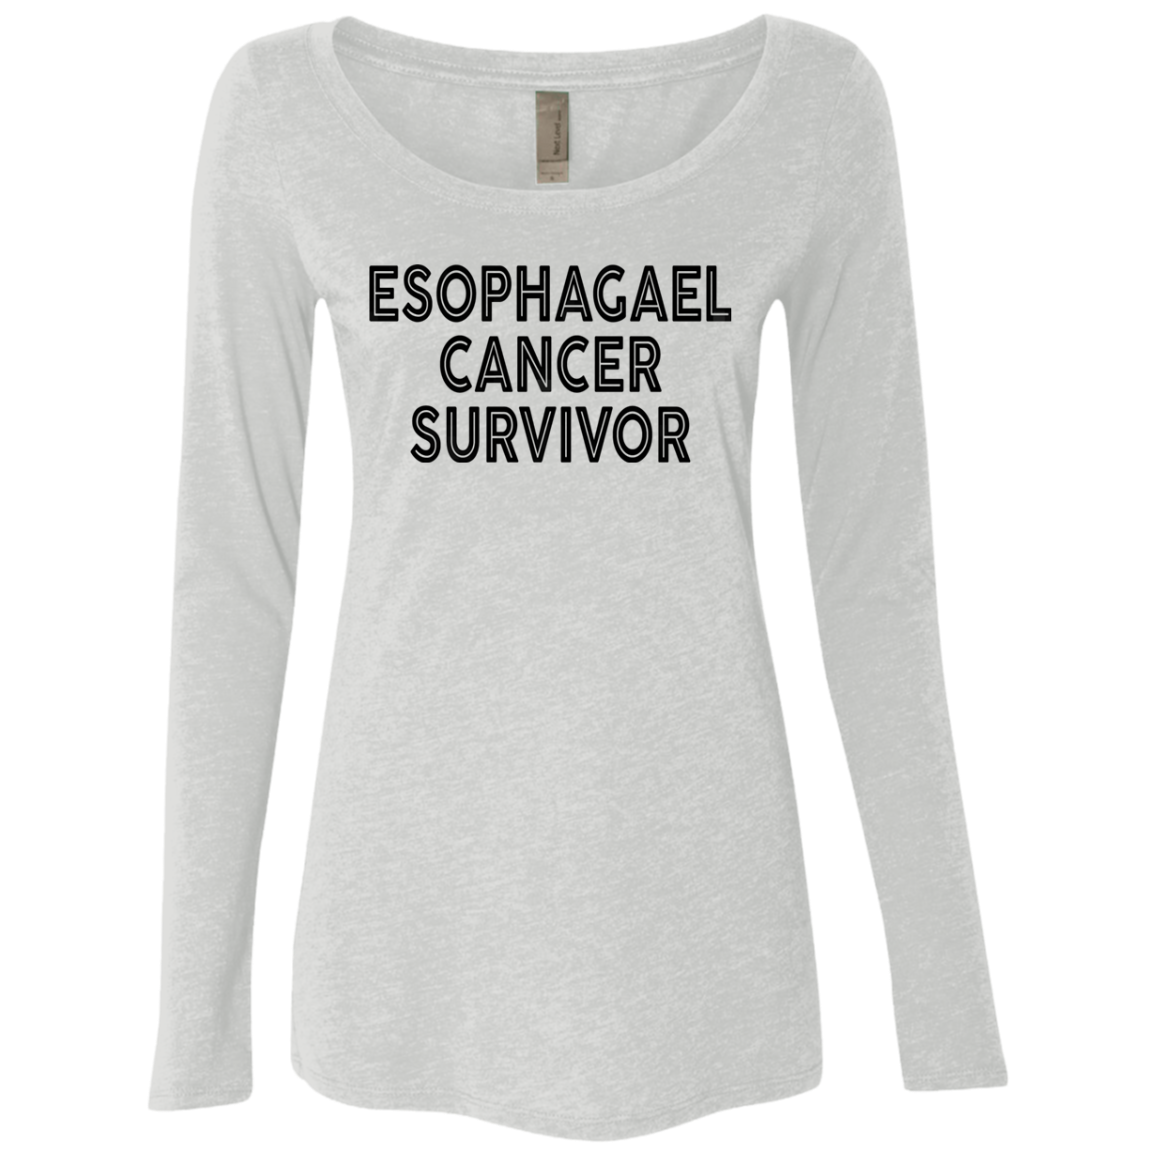 Esophagael Cancer Survivor Women's Long Sleeve Tee